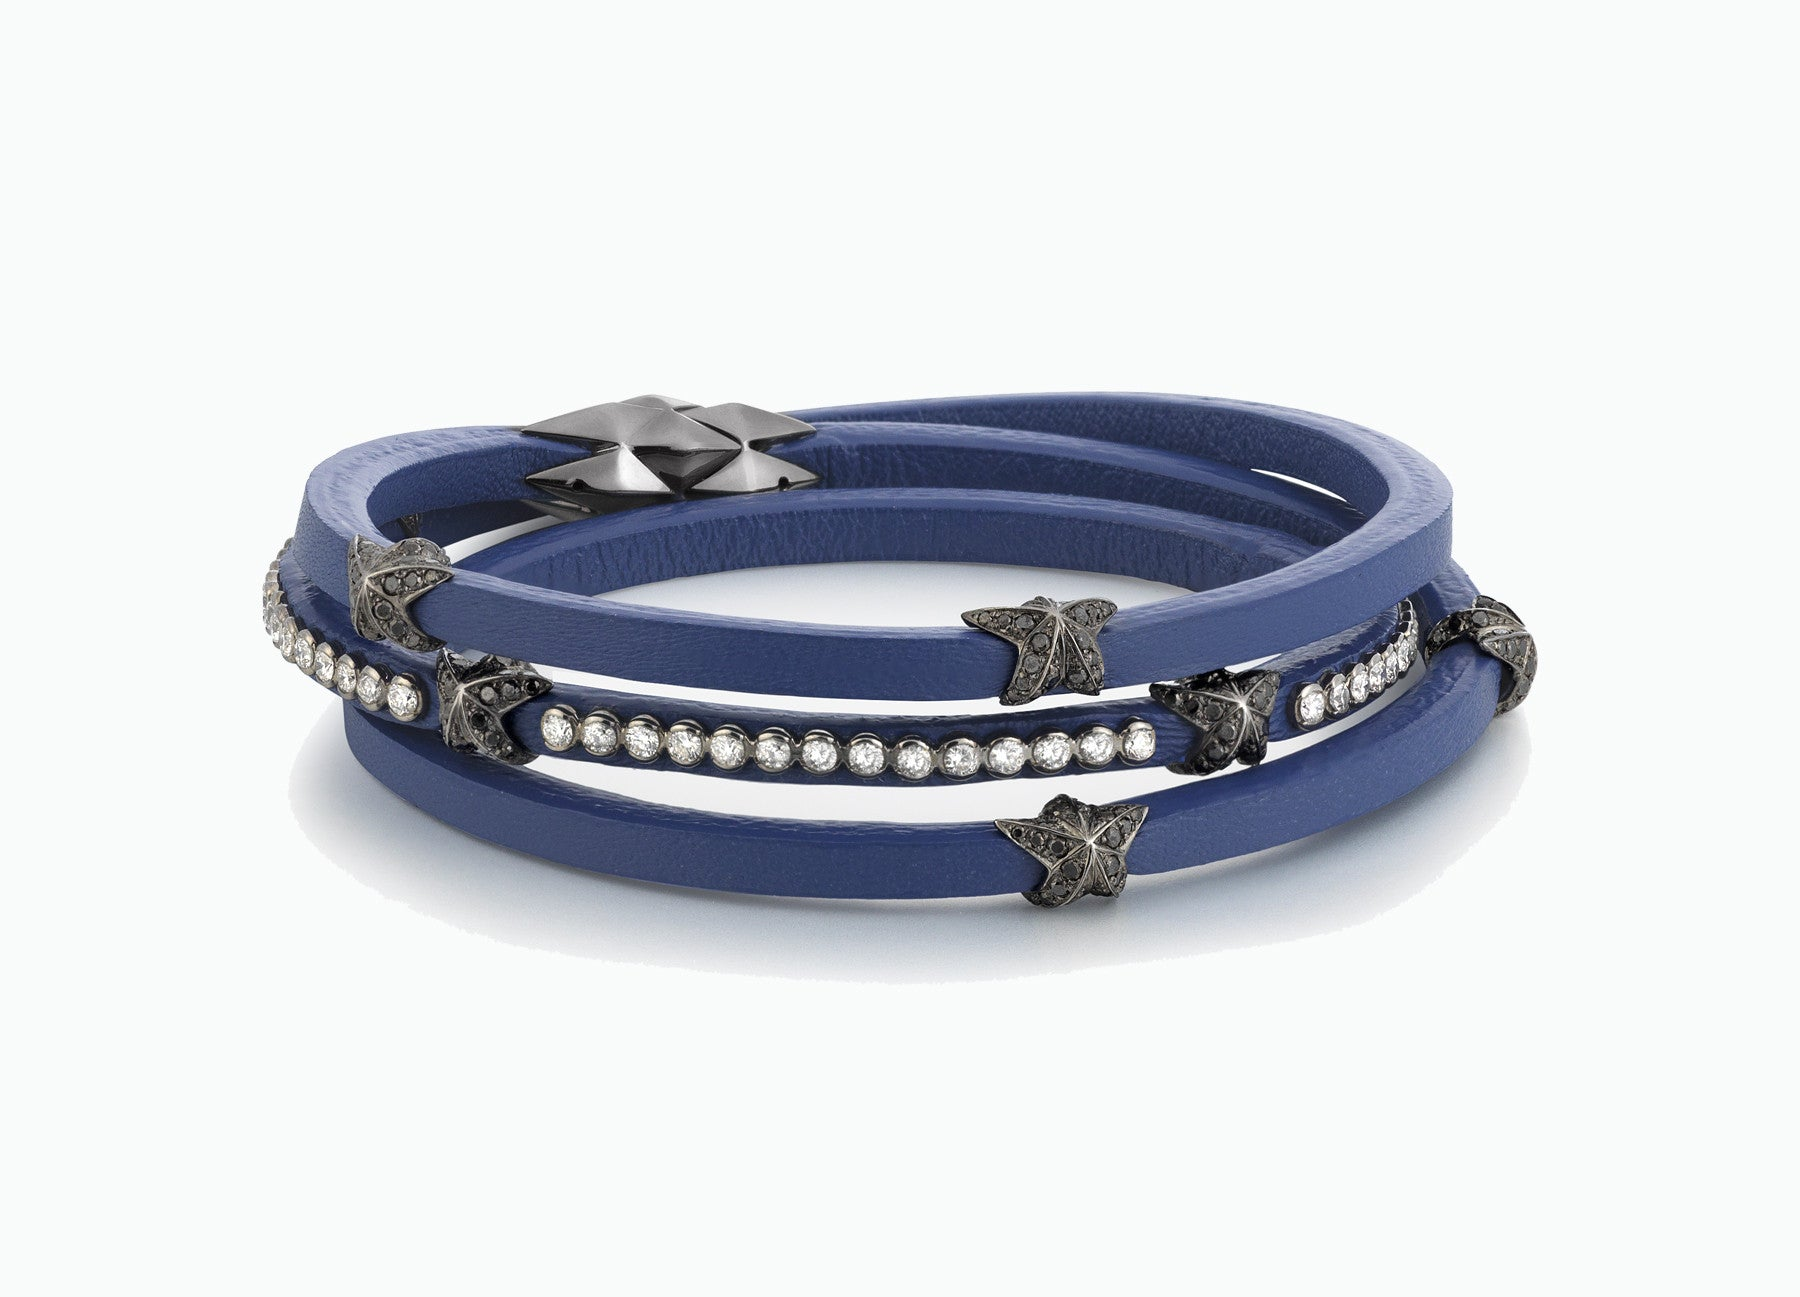 WRAP BRACELETS CITY COBALT BLUE TRIPLE WRAP